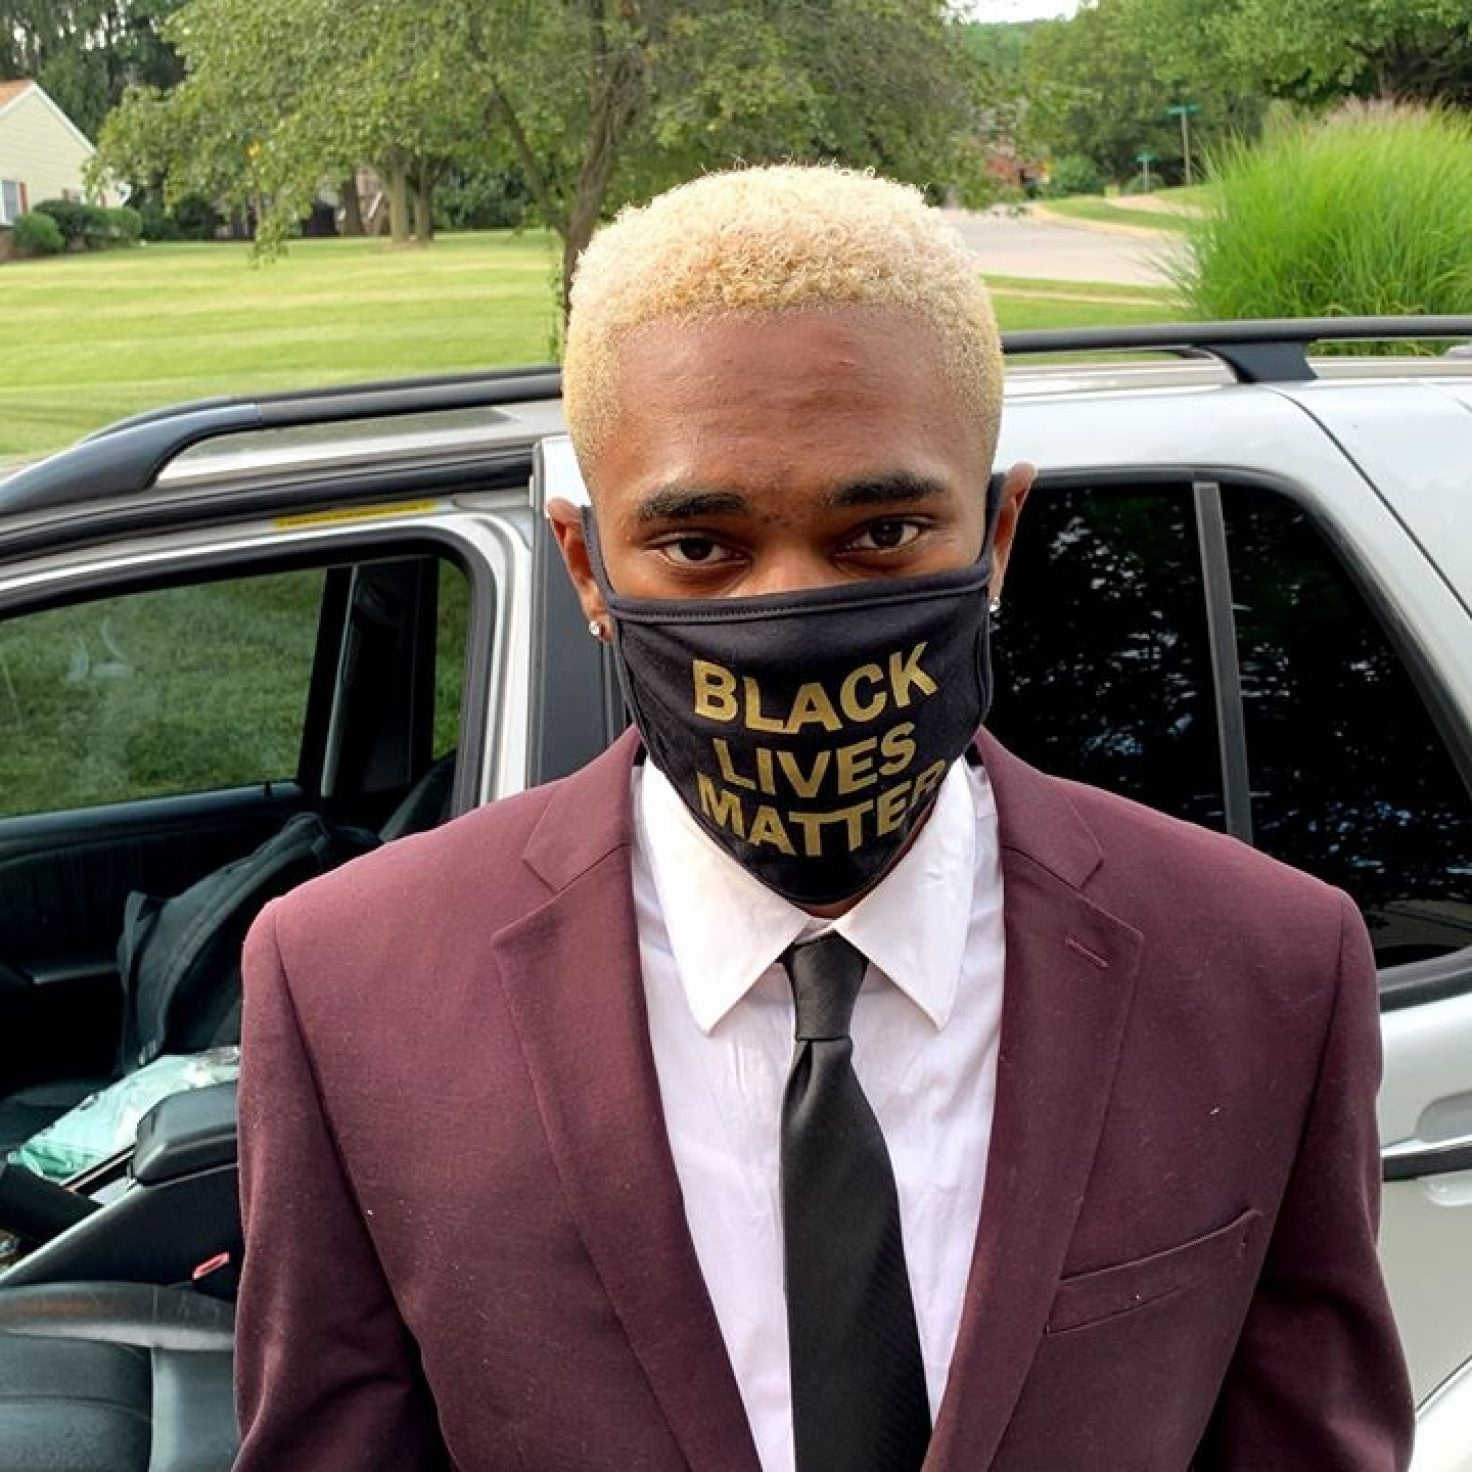 Student Told To Remove 'Black Lives Matter' Face Mask At Graduation Ceremony